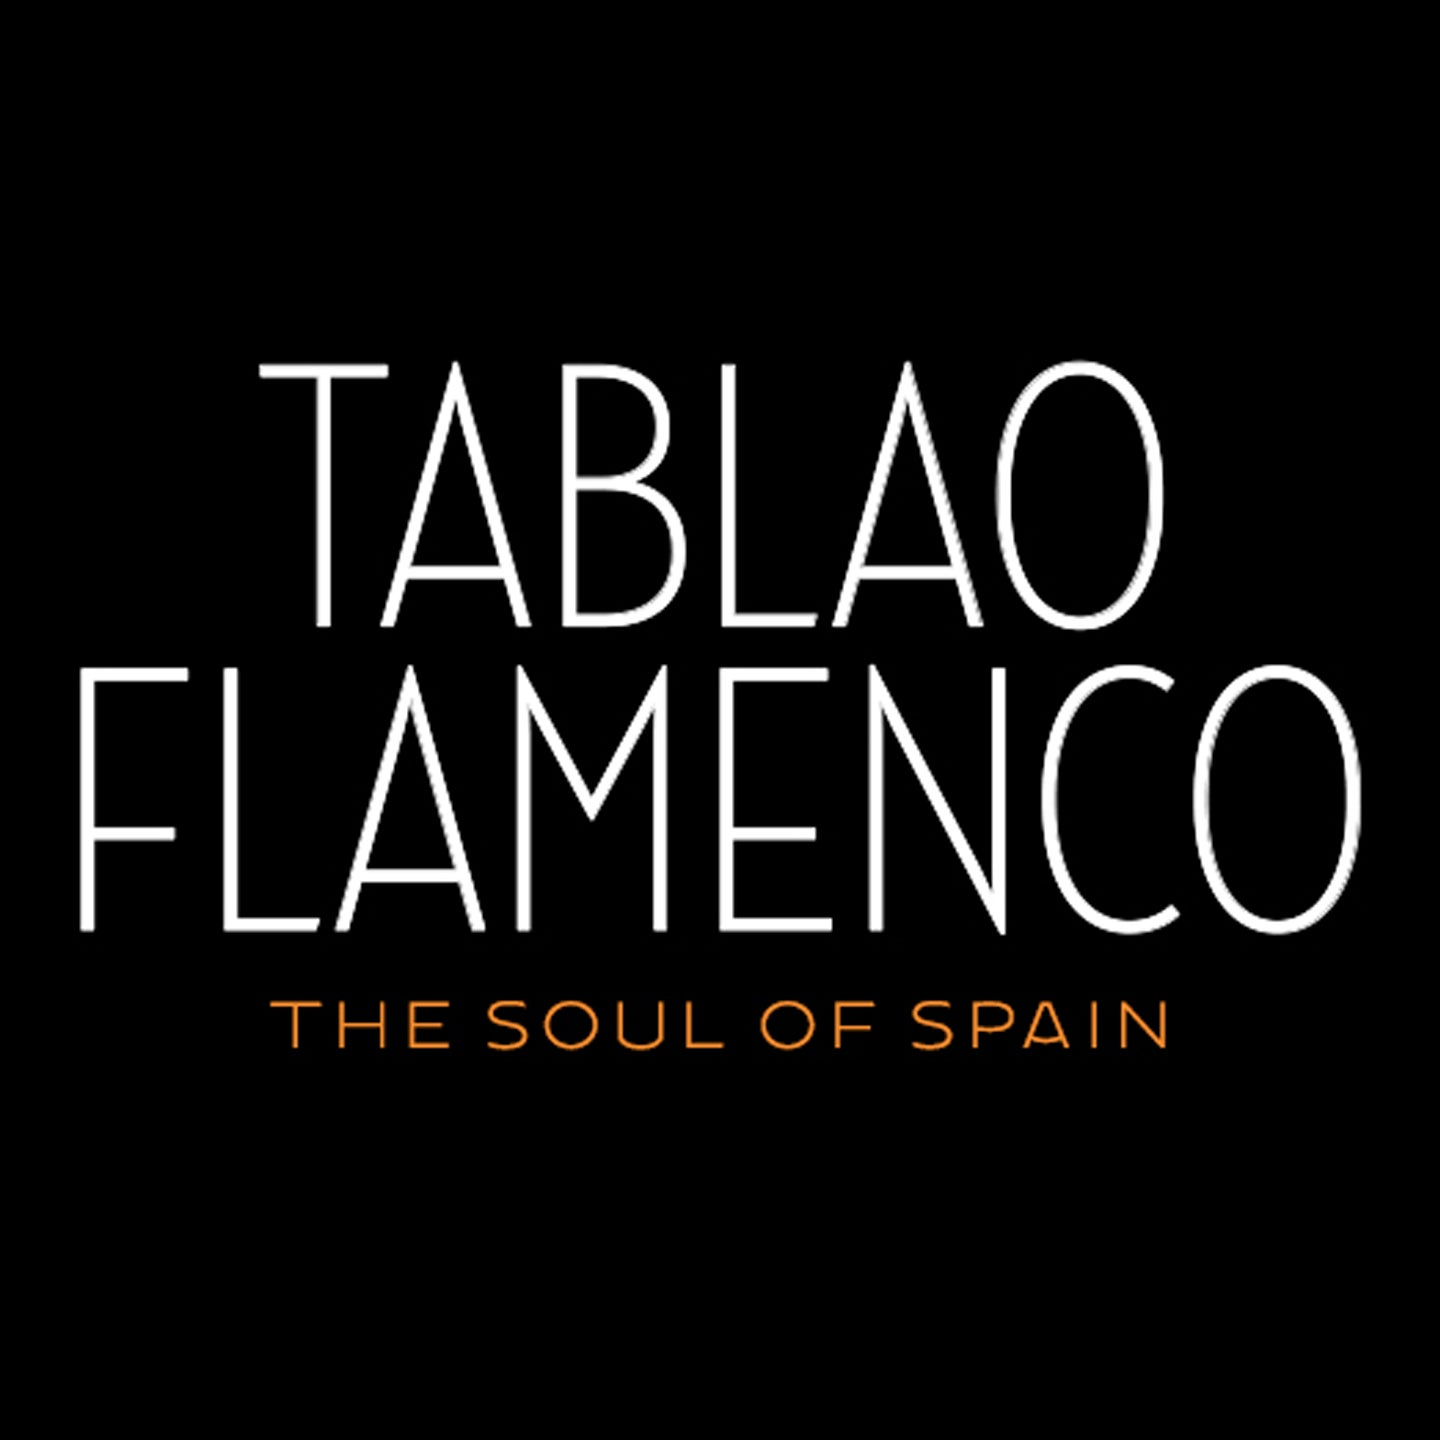 Tablao Flamenco - The Soul of Spain